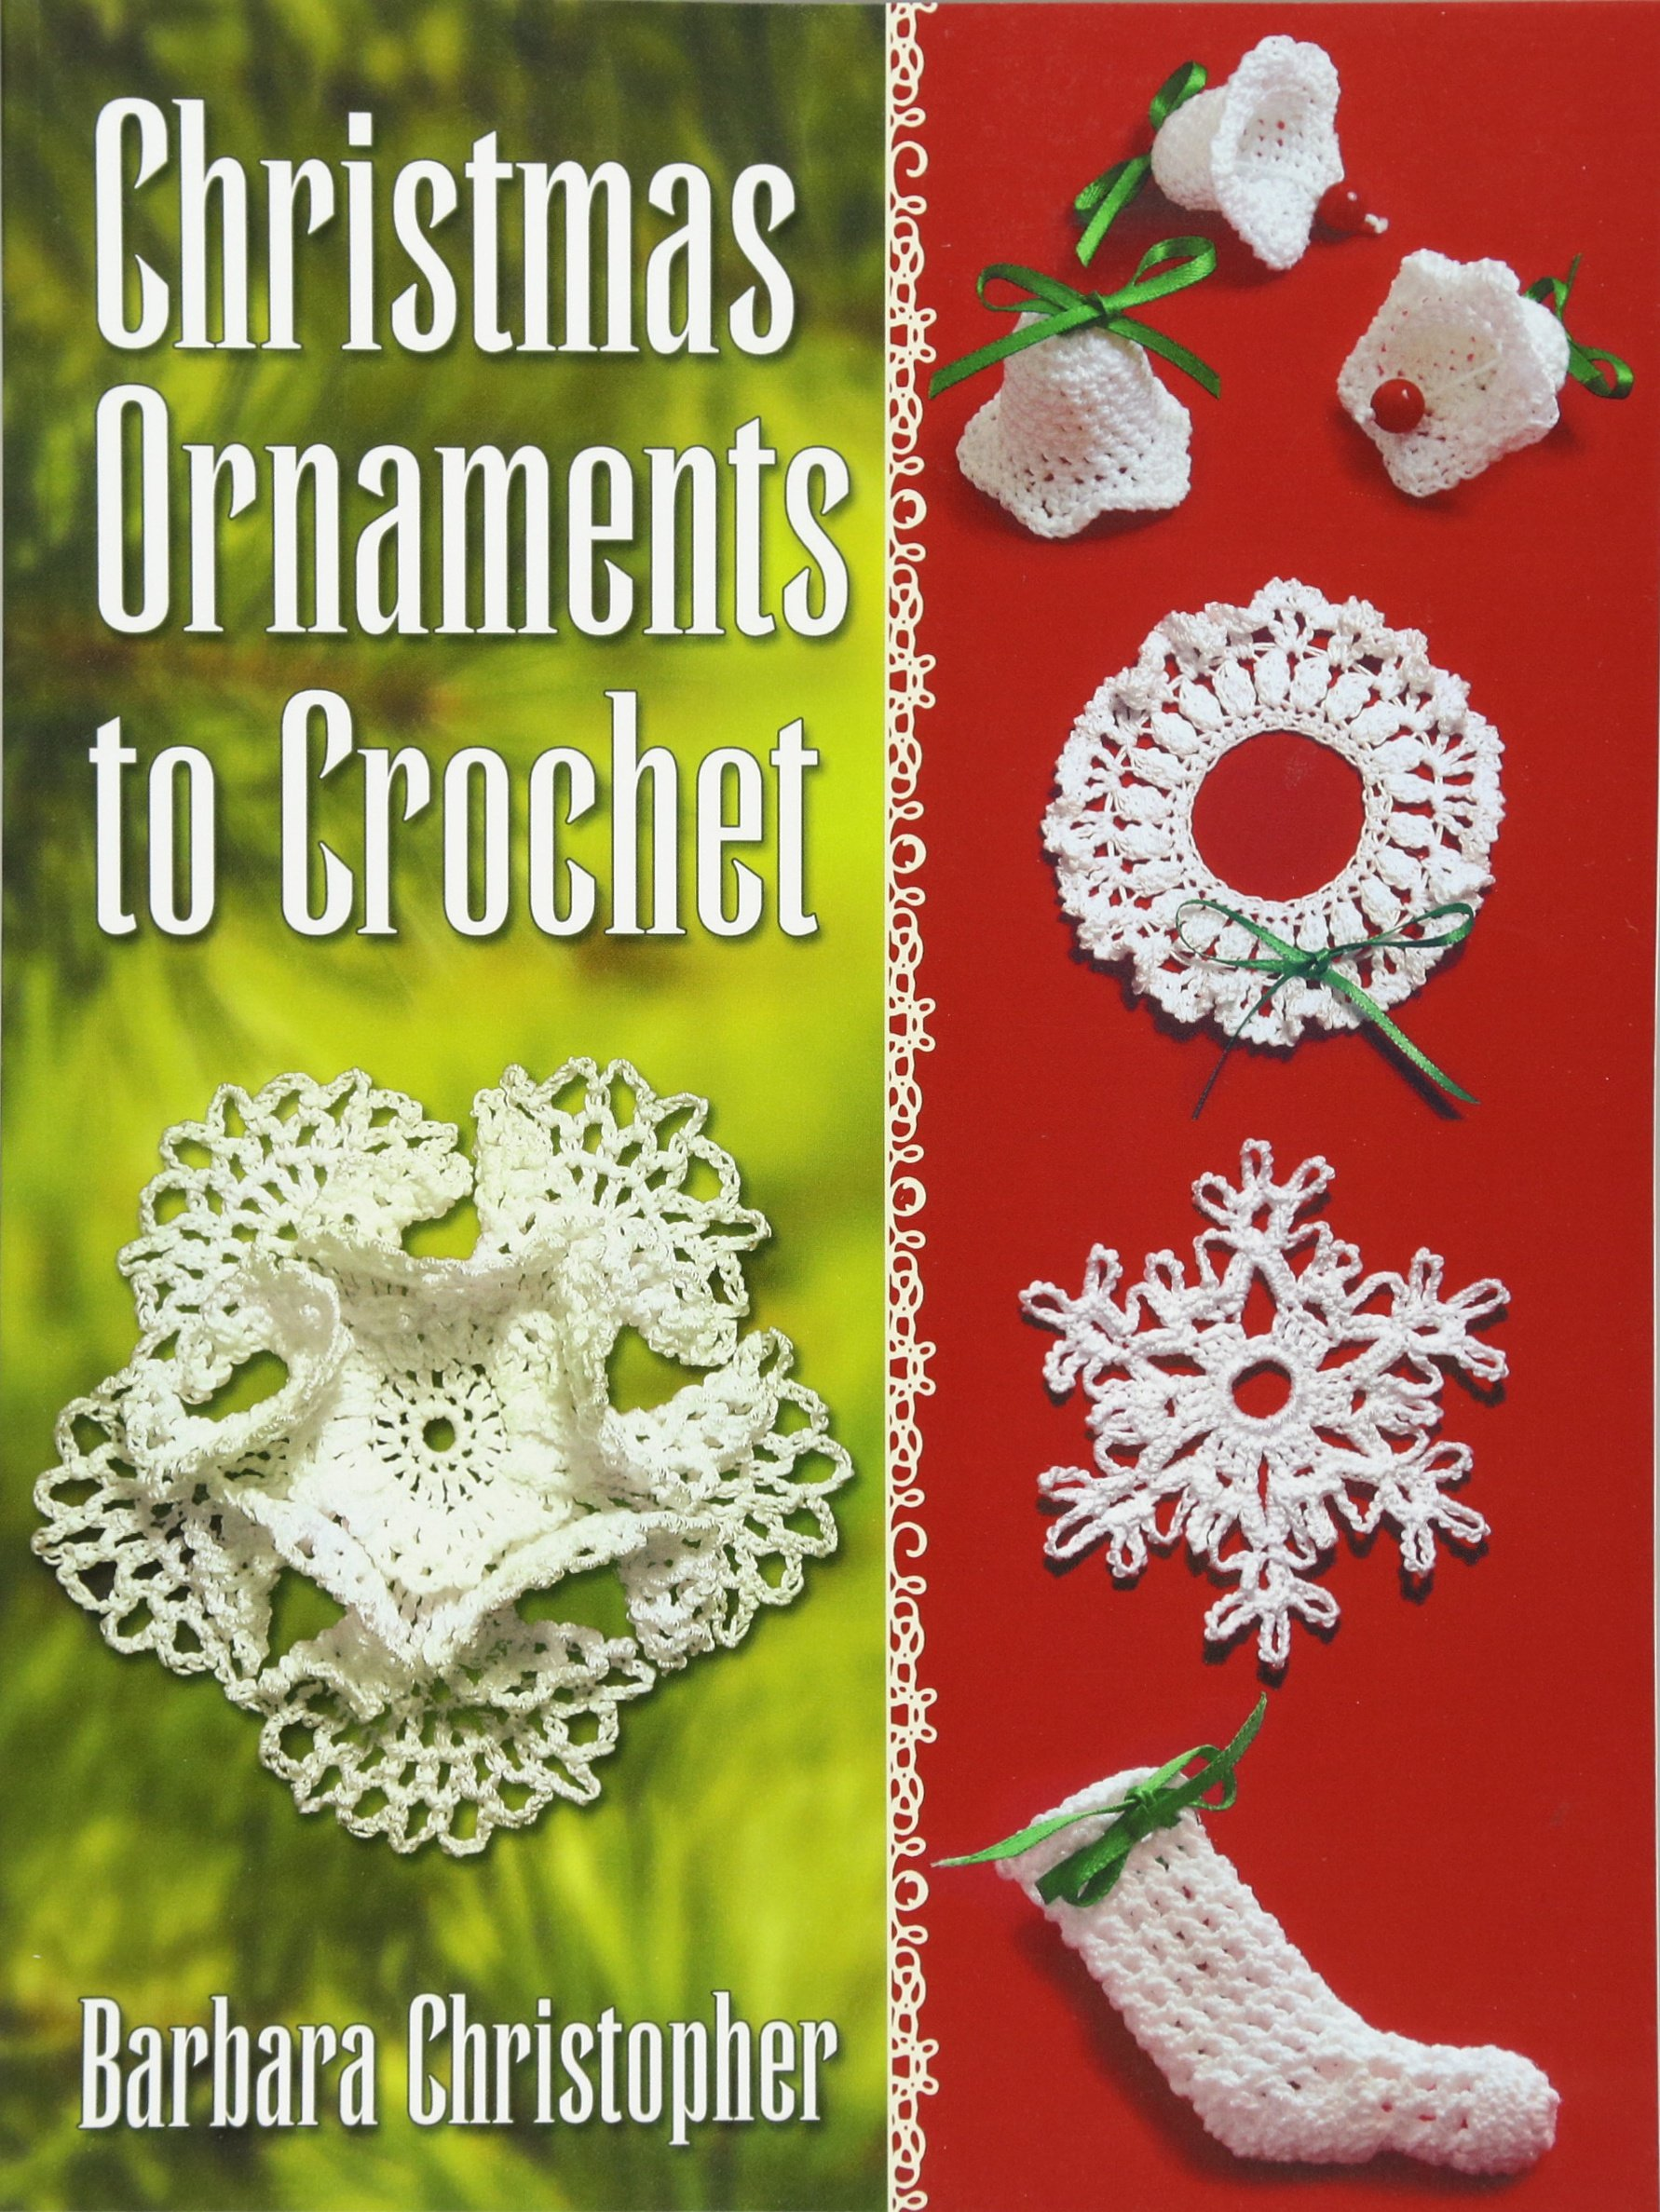 Christmas Ornaments to Crochet (Dover Books on Knitting and Crochet):  Barbara Christopher: 9780486789613: Amazon.com: Books